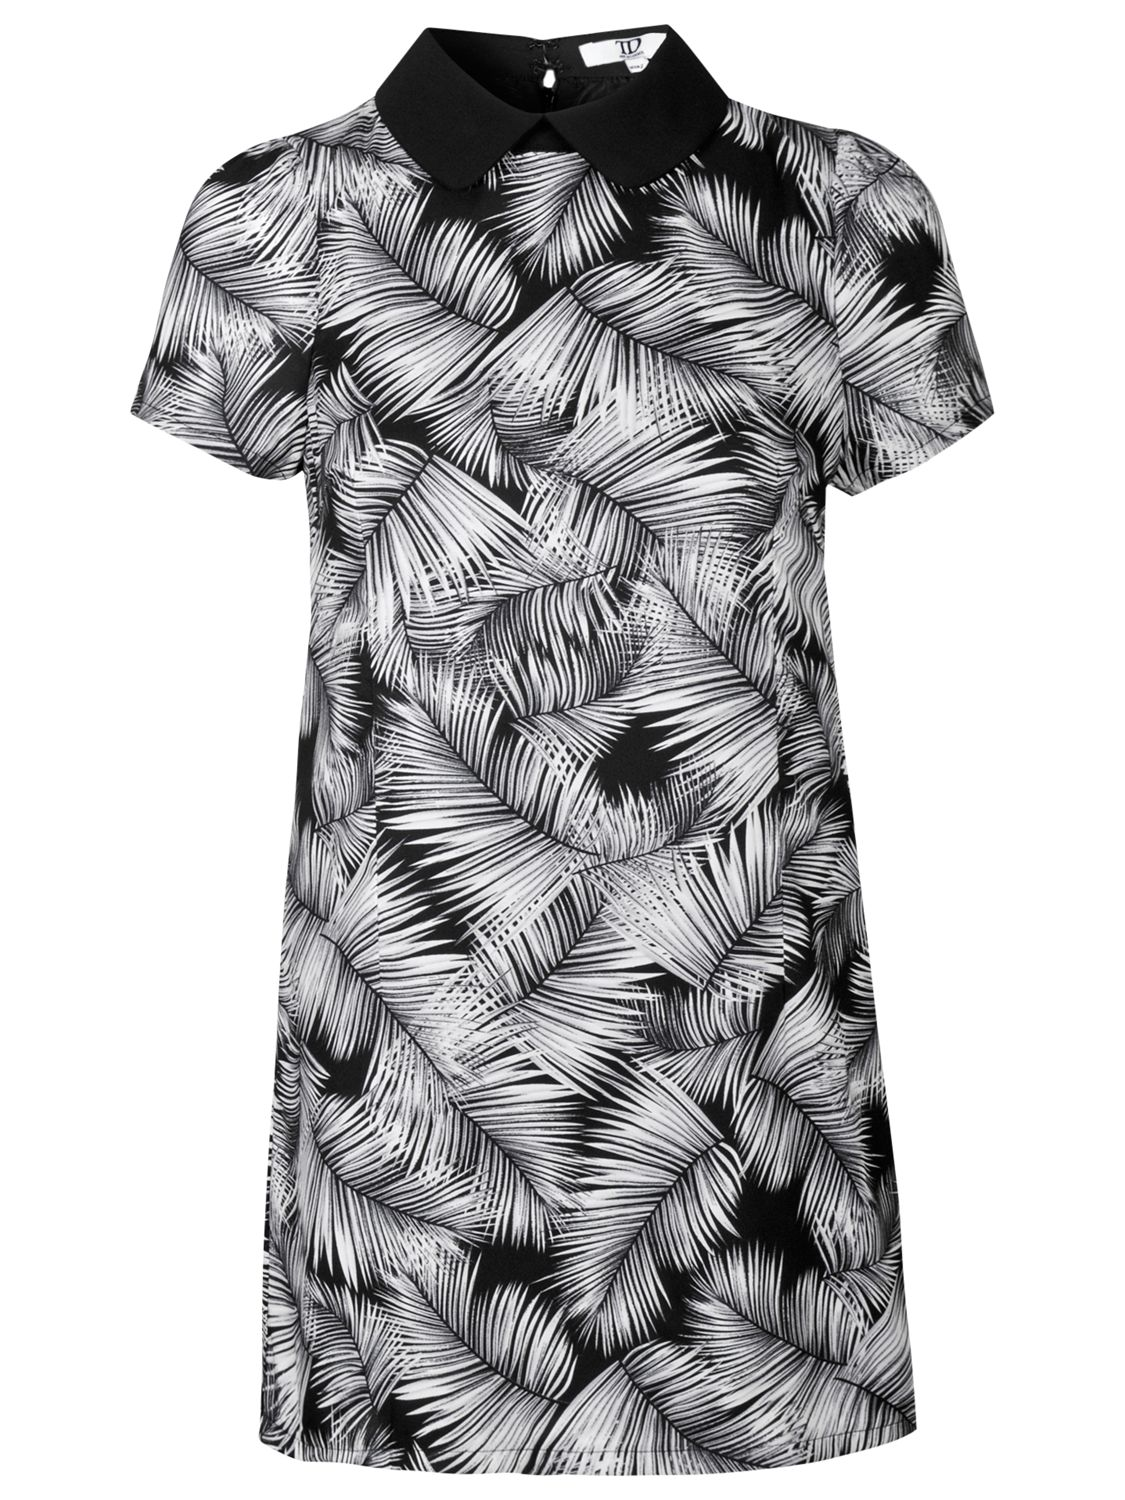 true decadence monochrome print dress black/white, true, decadence, monochrome, print, dress, black/white, true decadence, 16|10|14|12|8, edition magazine, new japan, women, inactive womenswear, ss14 trends, womens dresses, special offers, womenswear offers, womens dresses offers, new minimal, 1179568